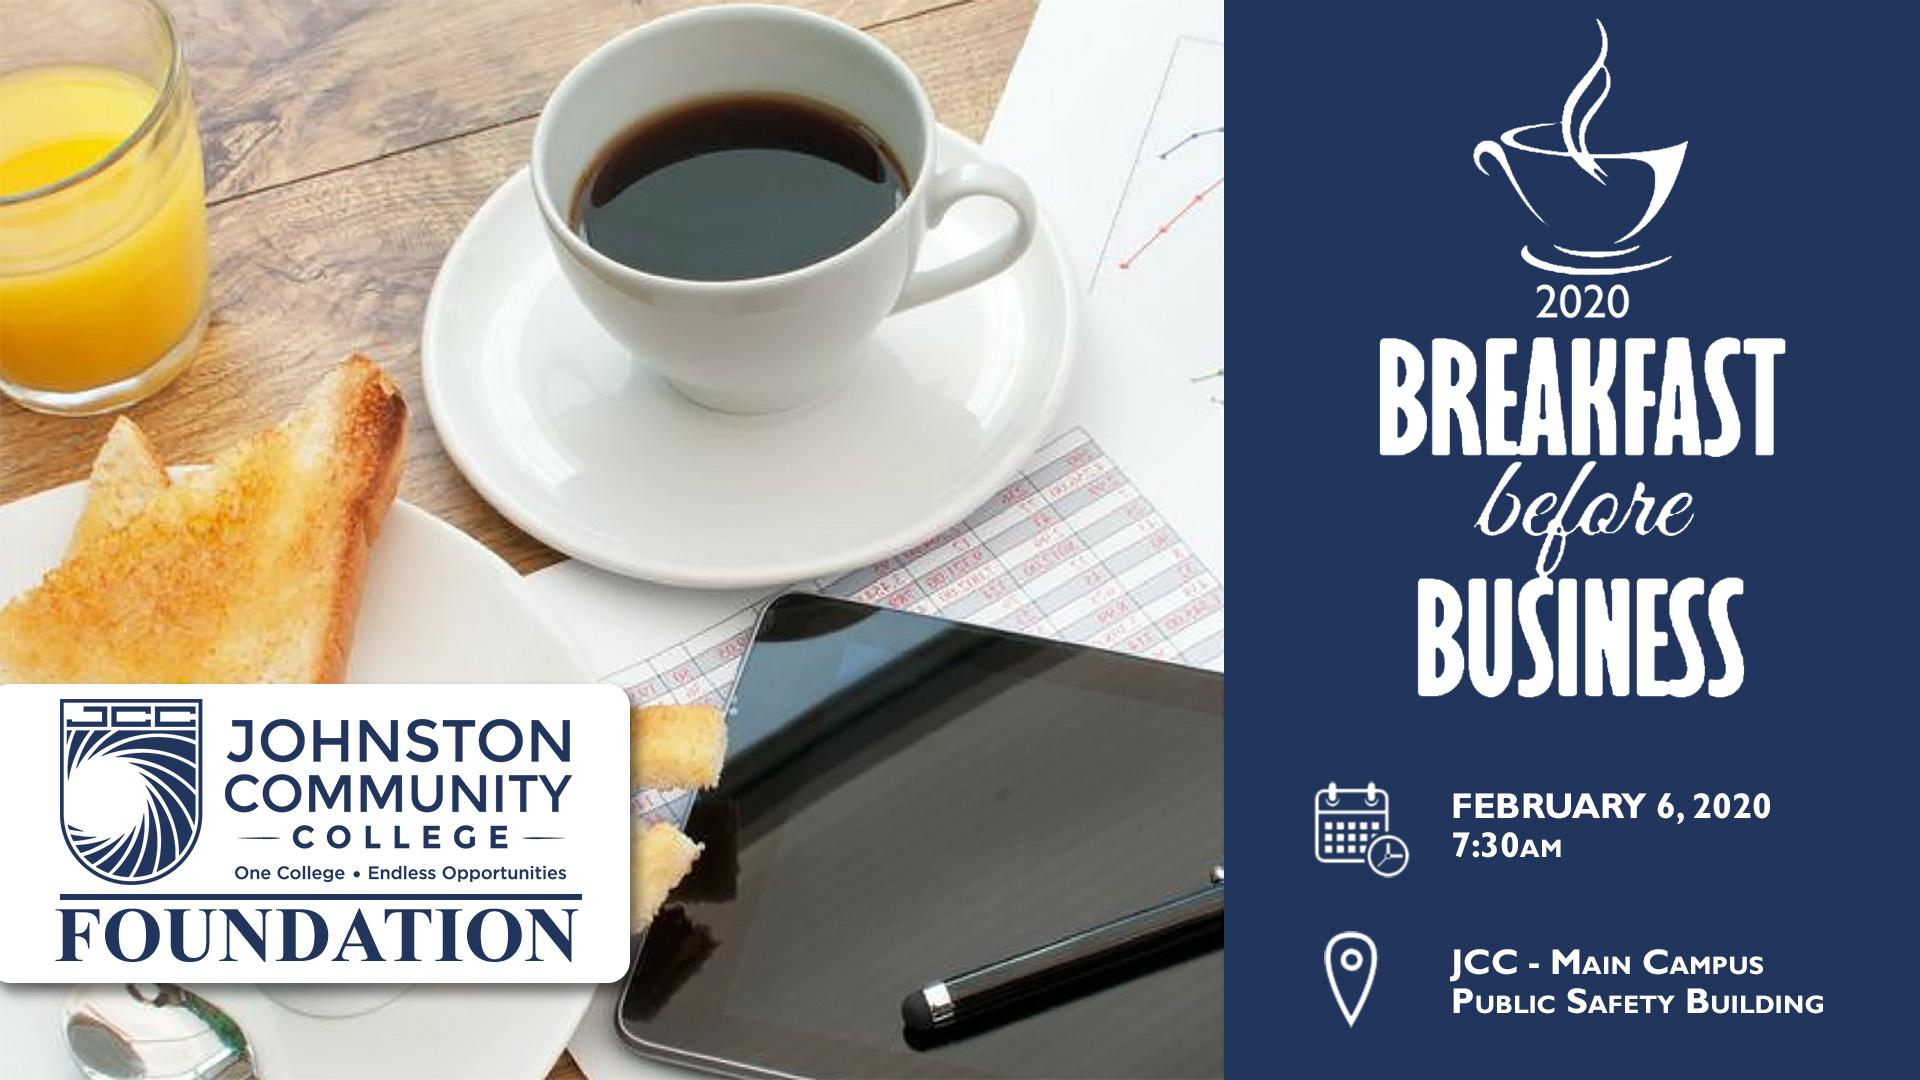 2020 Breakfast before business. February 6, 2020 at 7:30AM in the Public Safety Building on Main Campus. Click here to learn more.